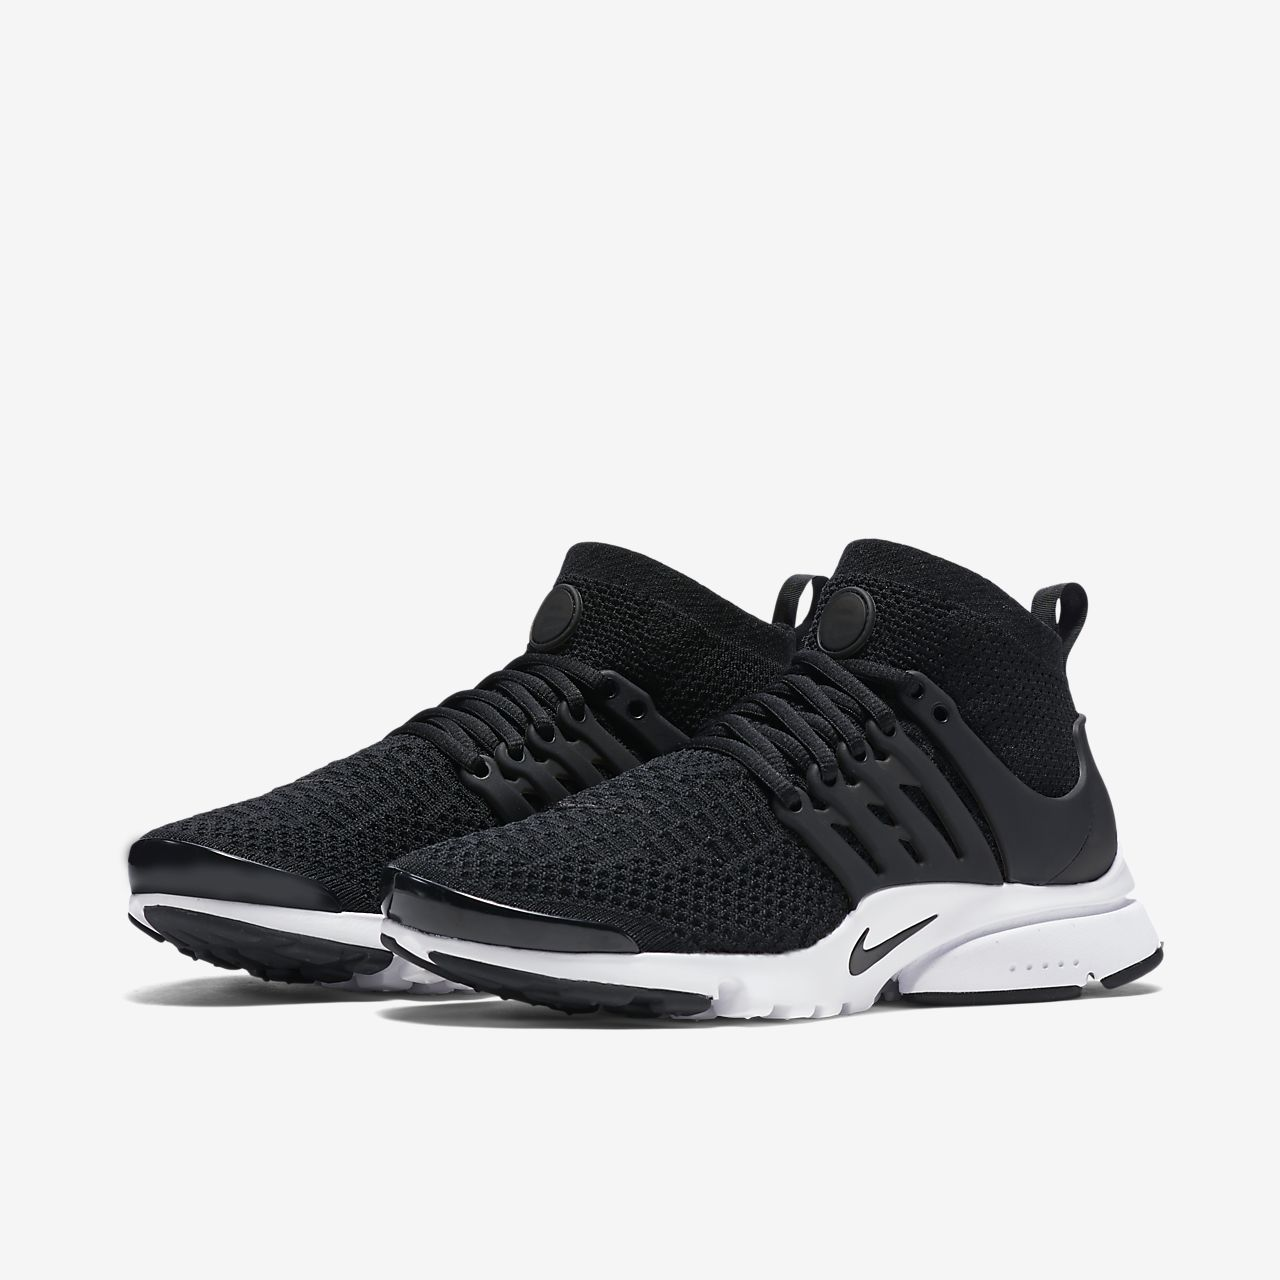 952b8ea24adb5 Nike Air Presto Ultra Flyknit   Buy Nike Shoes   Sneakers ...